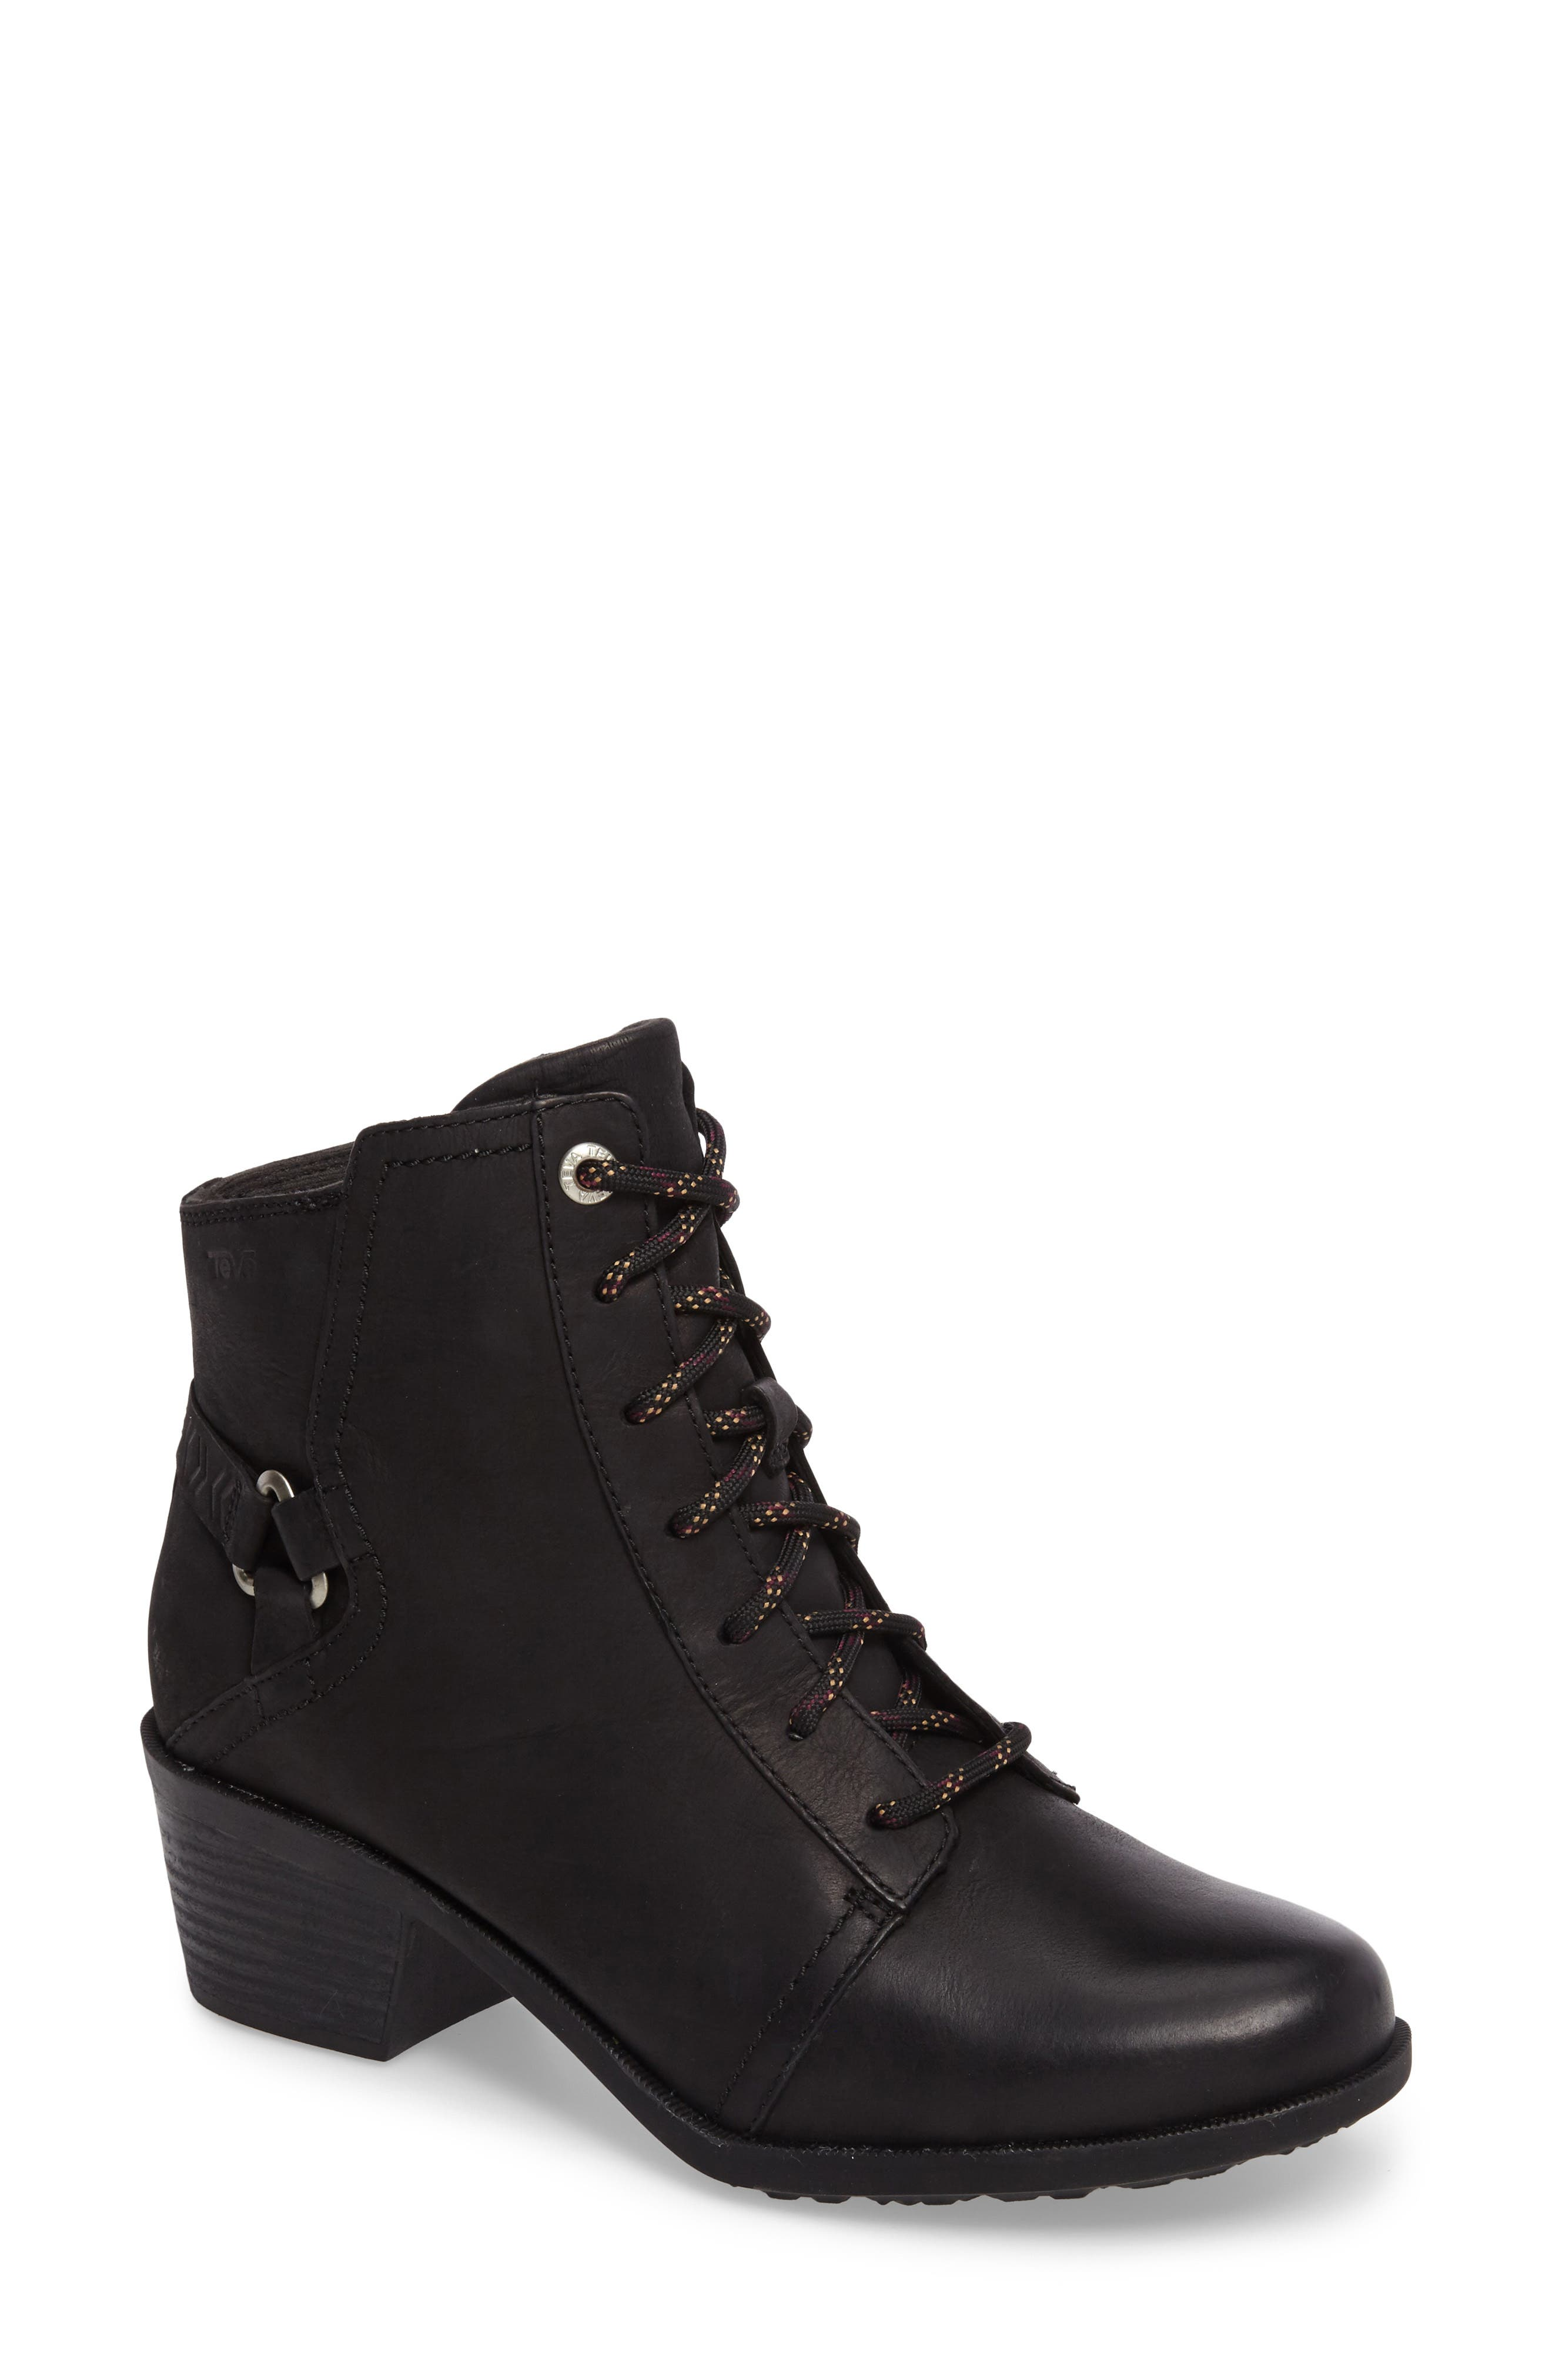 Foxy Lace-Up Waterproof Boot,                             Main thumbnail 1, color,                             BLACK LEATHER